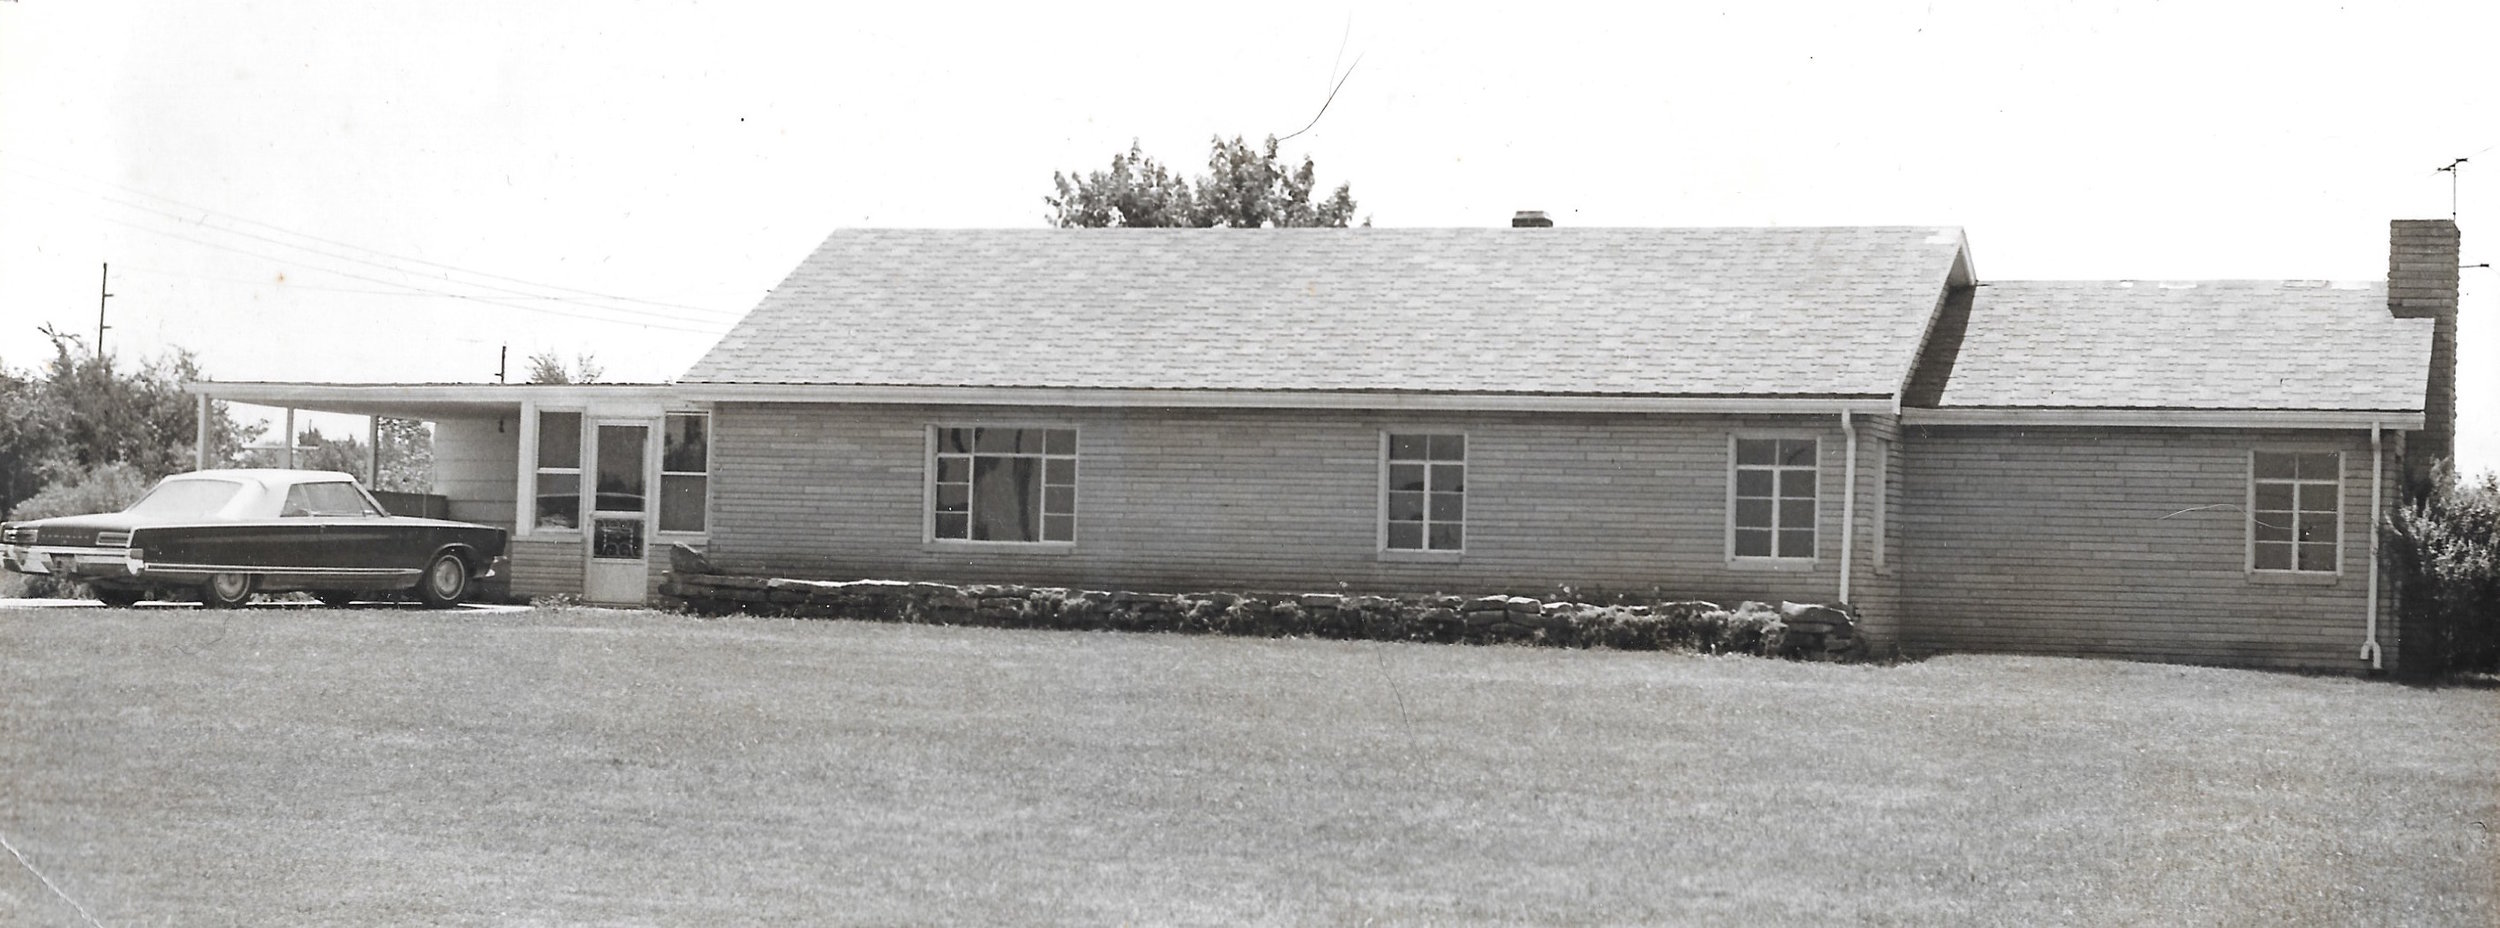 The meetinghouse when it was first purchased in the sixties, prior to renovations.